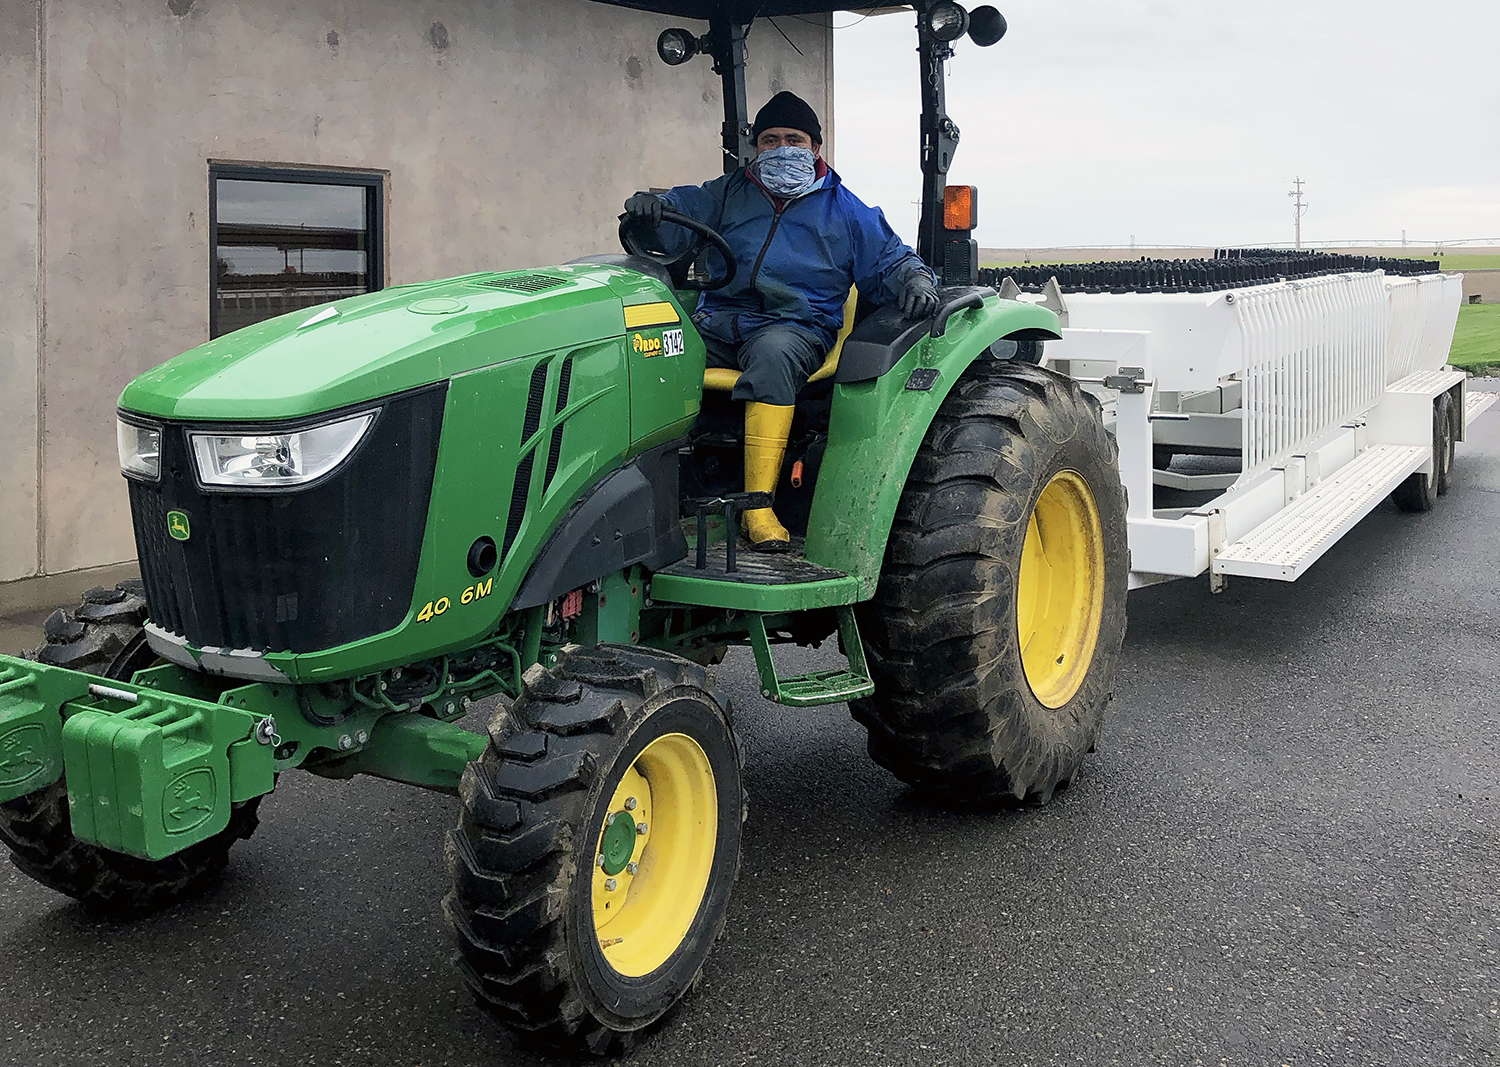 Hispanic man driving a green tractor with a trailer